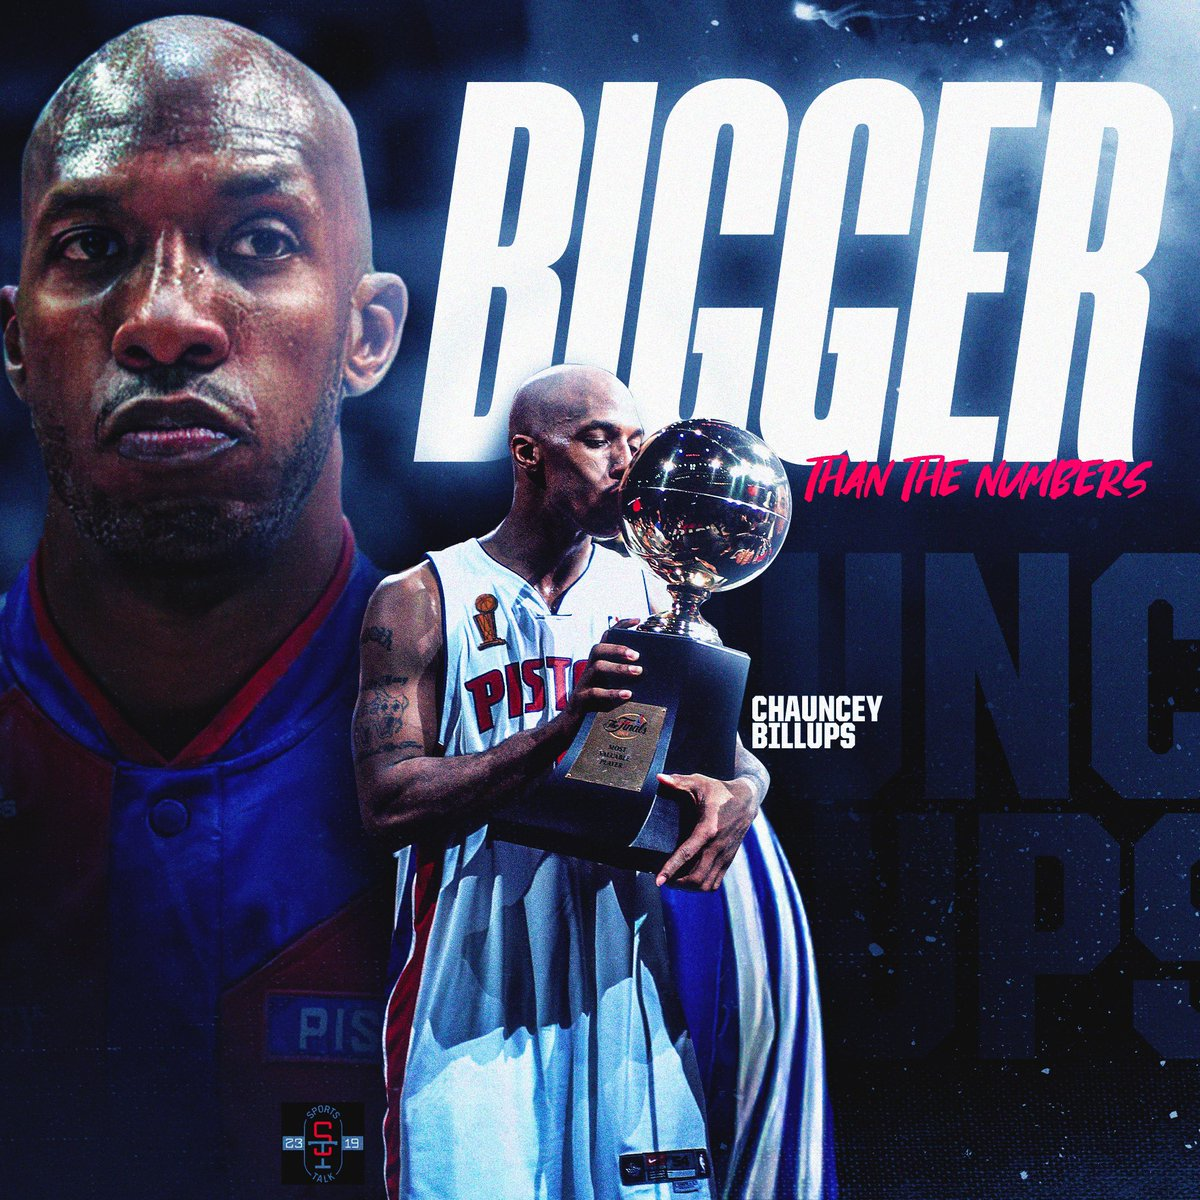 """My series """"Legends Circle"""" featuring the stories of two future Hall of Famers. Chauncey Billups-Bigger than the Numbers and Chris Webber- Dominant by Nature. Chauncey's the ultimate PG/winner and Chris Webber embodied the """"Power"""" forward position. Stay tuned. #TalkSoon https://t.co/uSdYCQxl0k"""